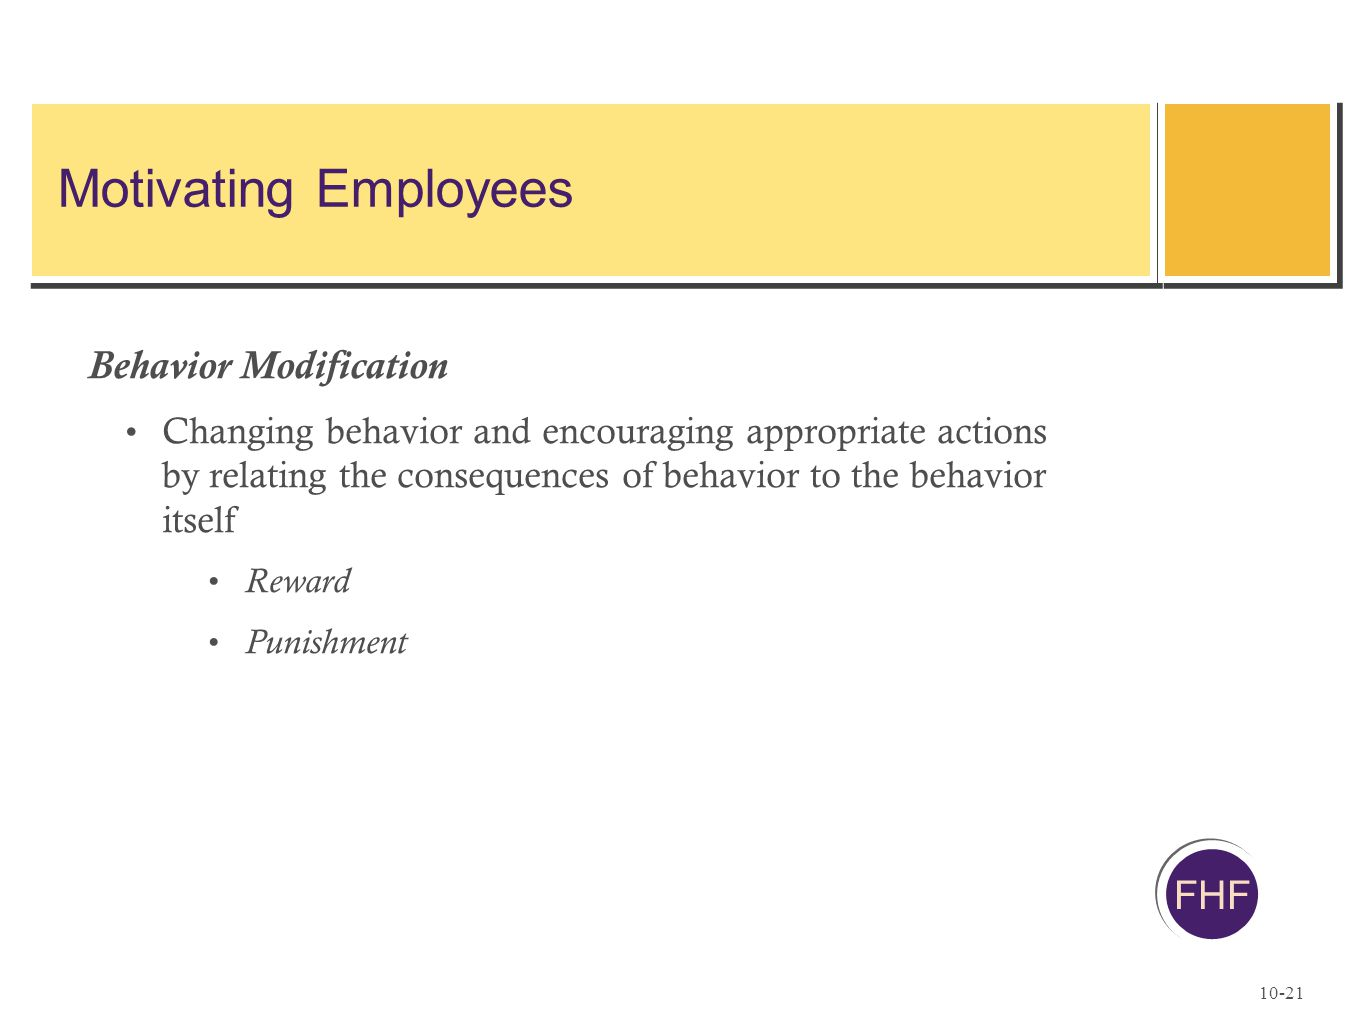 Motivating Employees Behavior Modification FHF